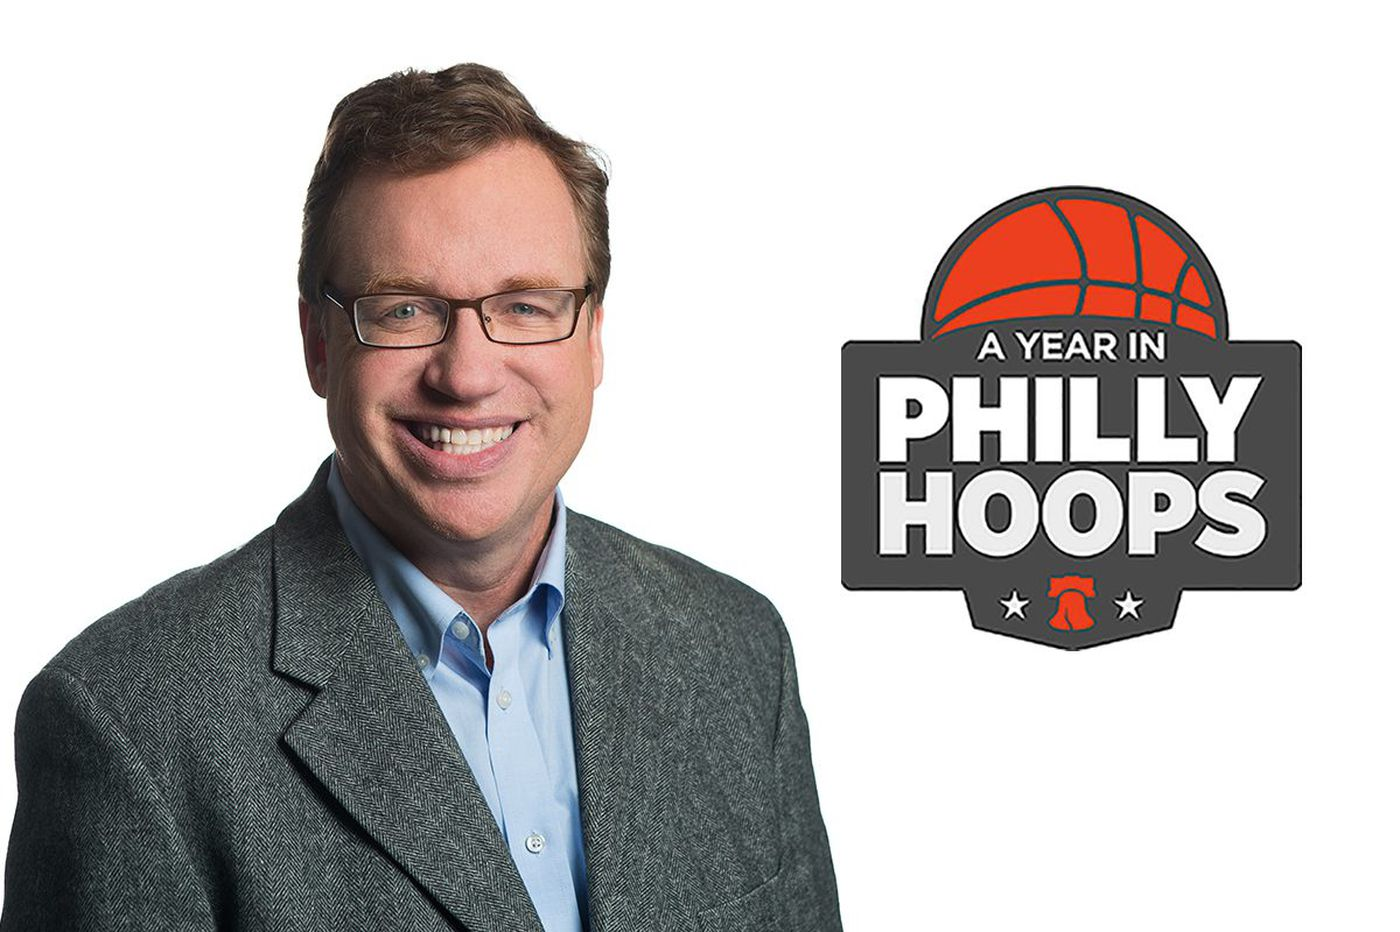 Philadelphia basketball community pays tribute to Mike Jensen's 'A Year in Philly Hoops' series